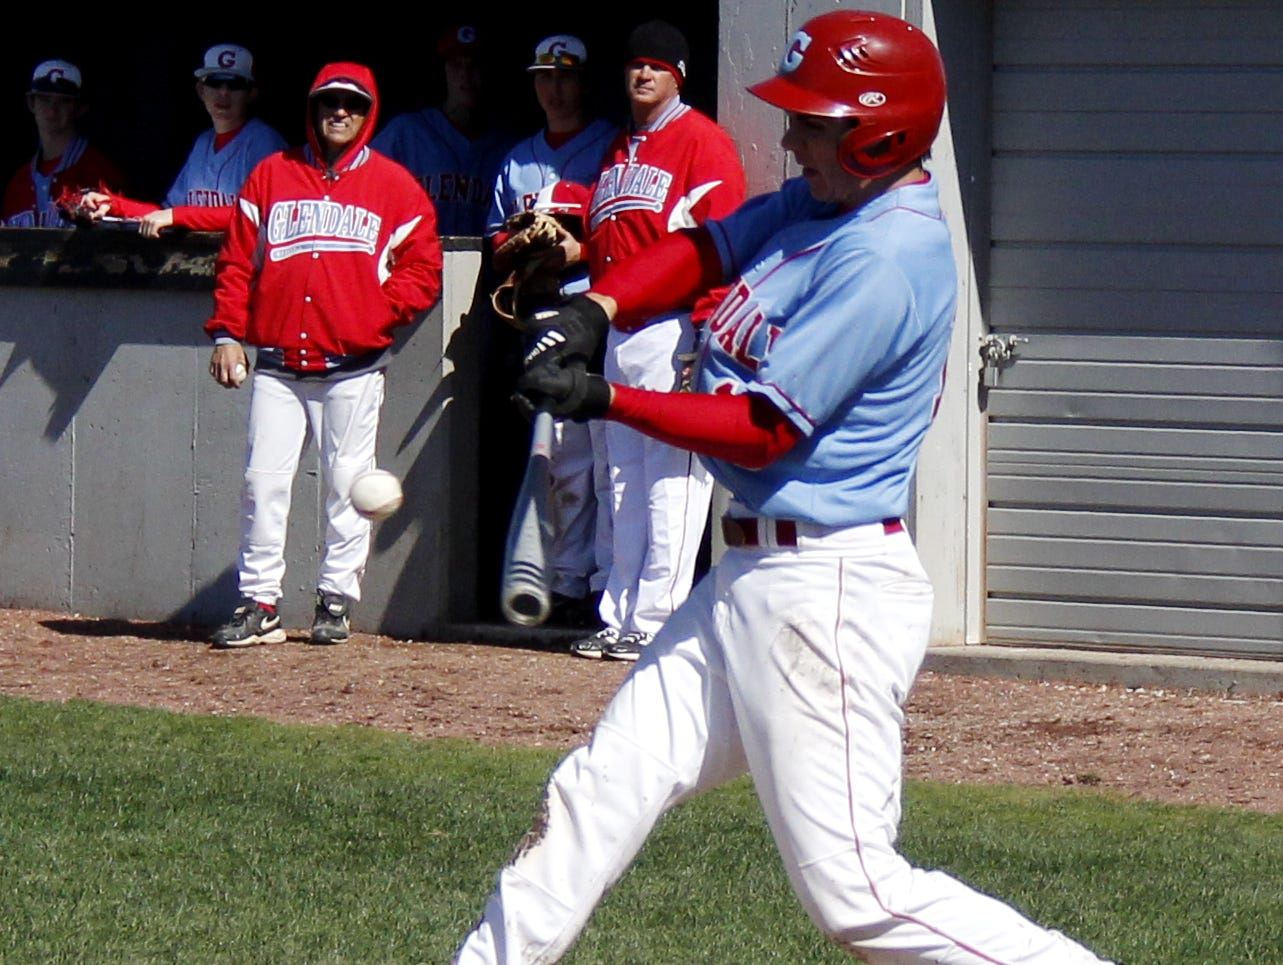 Sophomore outfielder Owen Gann leads Glendale in hitting headed into Tuesday's rivalry game at Glendale High School.